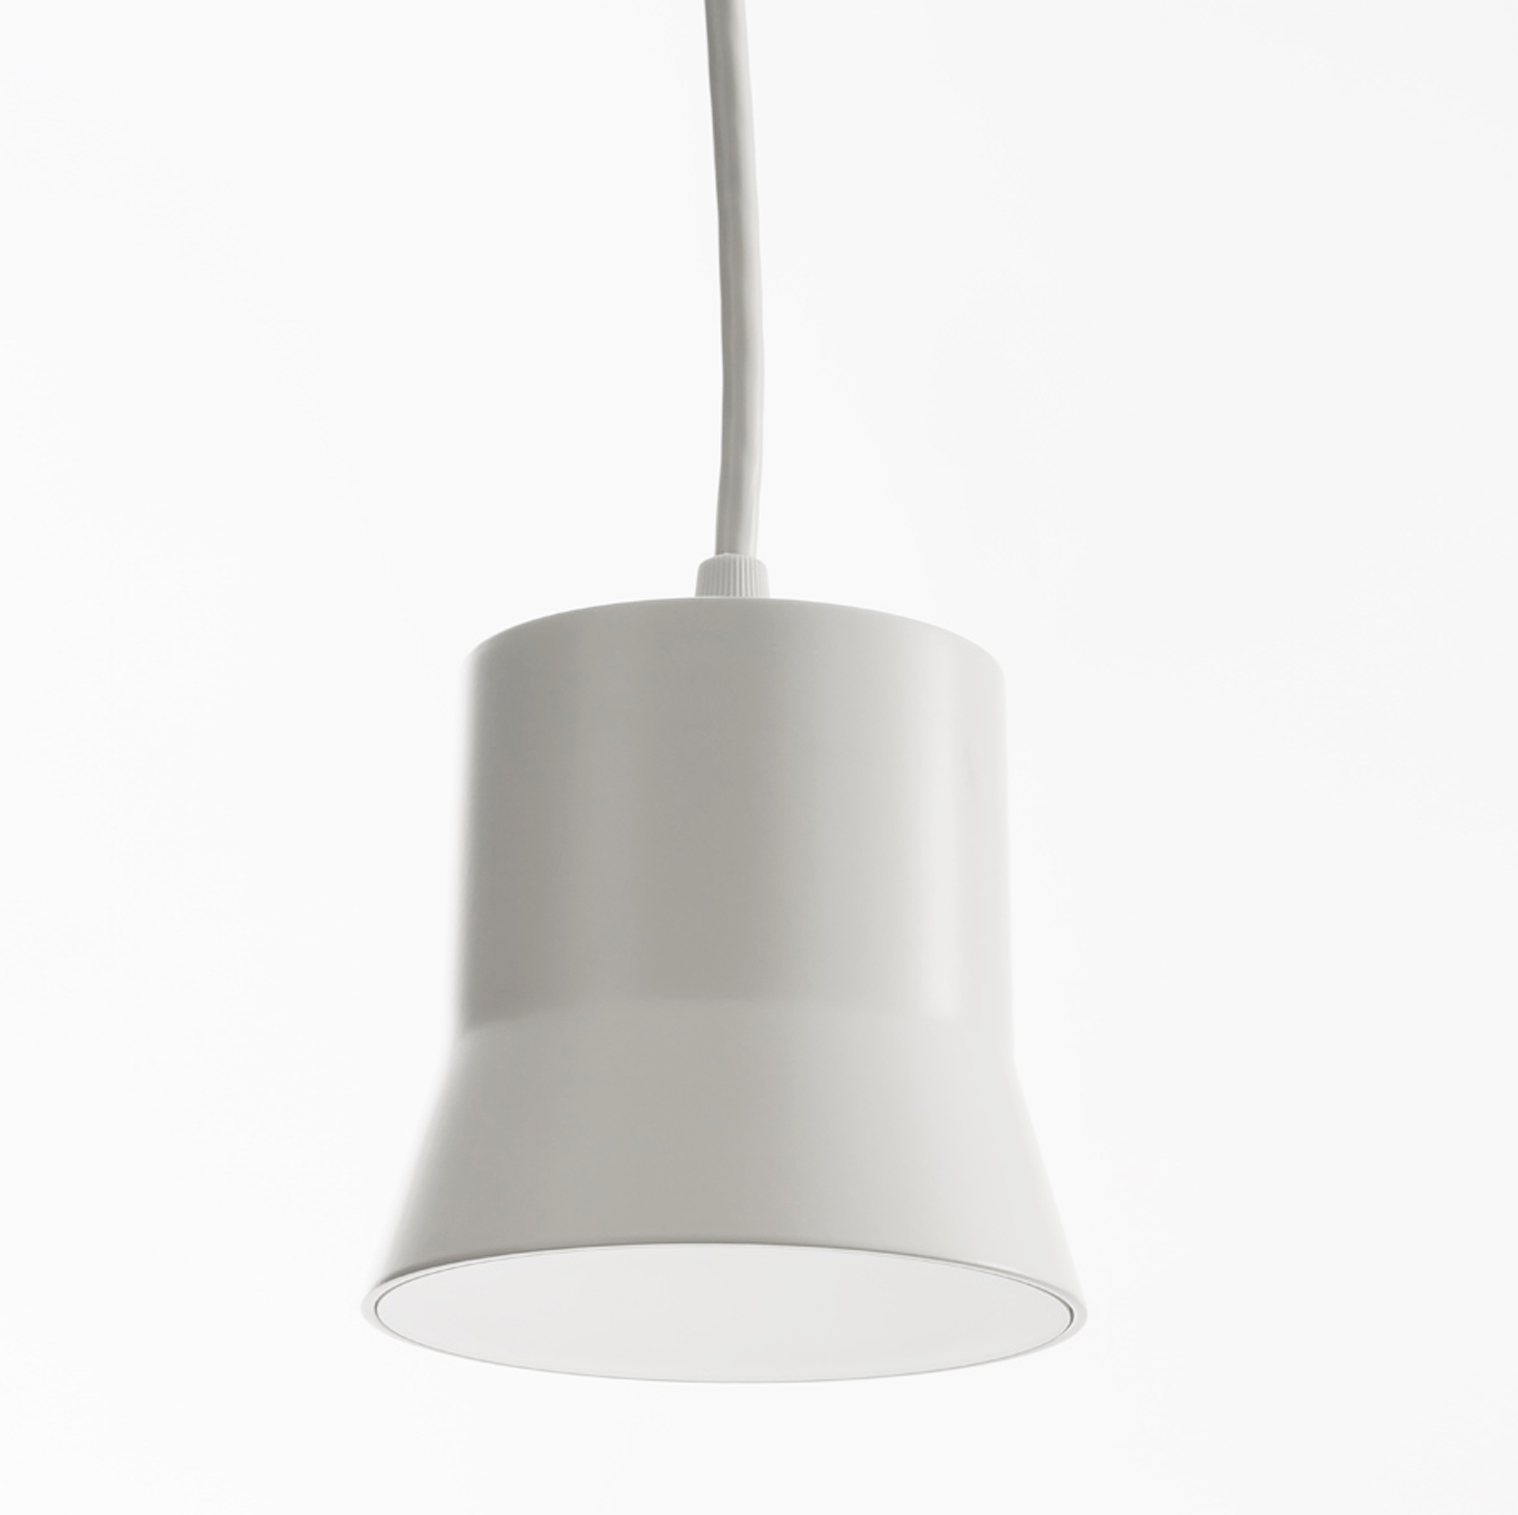 Artemide Suspension Pendant Light Gio White Led 3000k 430lm Ø10 7cm H9 8cm Artemide